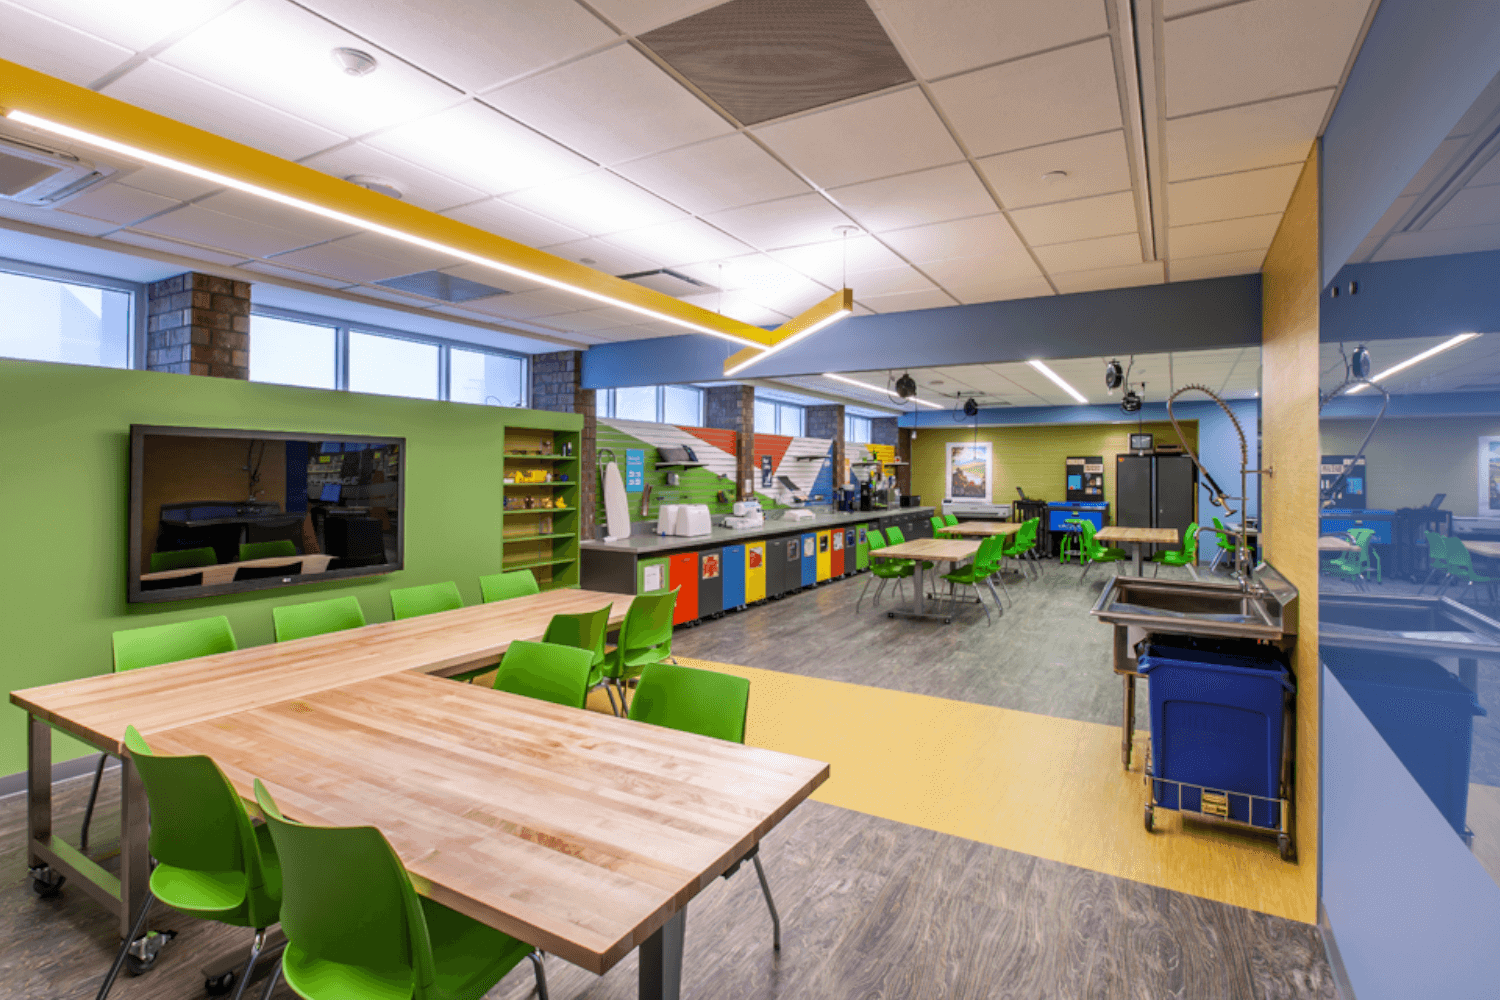 Deerfield Public Library Make Space Renovation Project room2